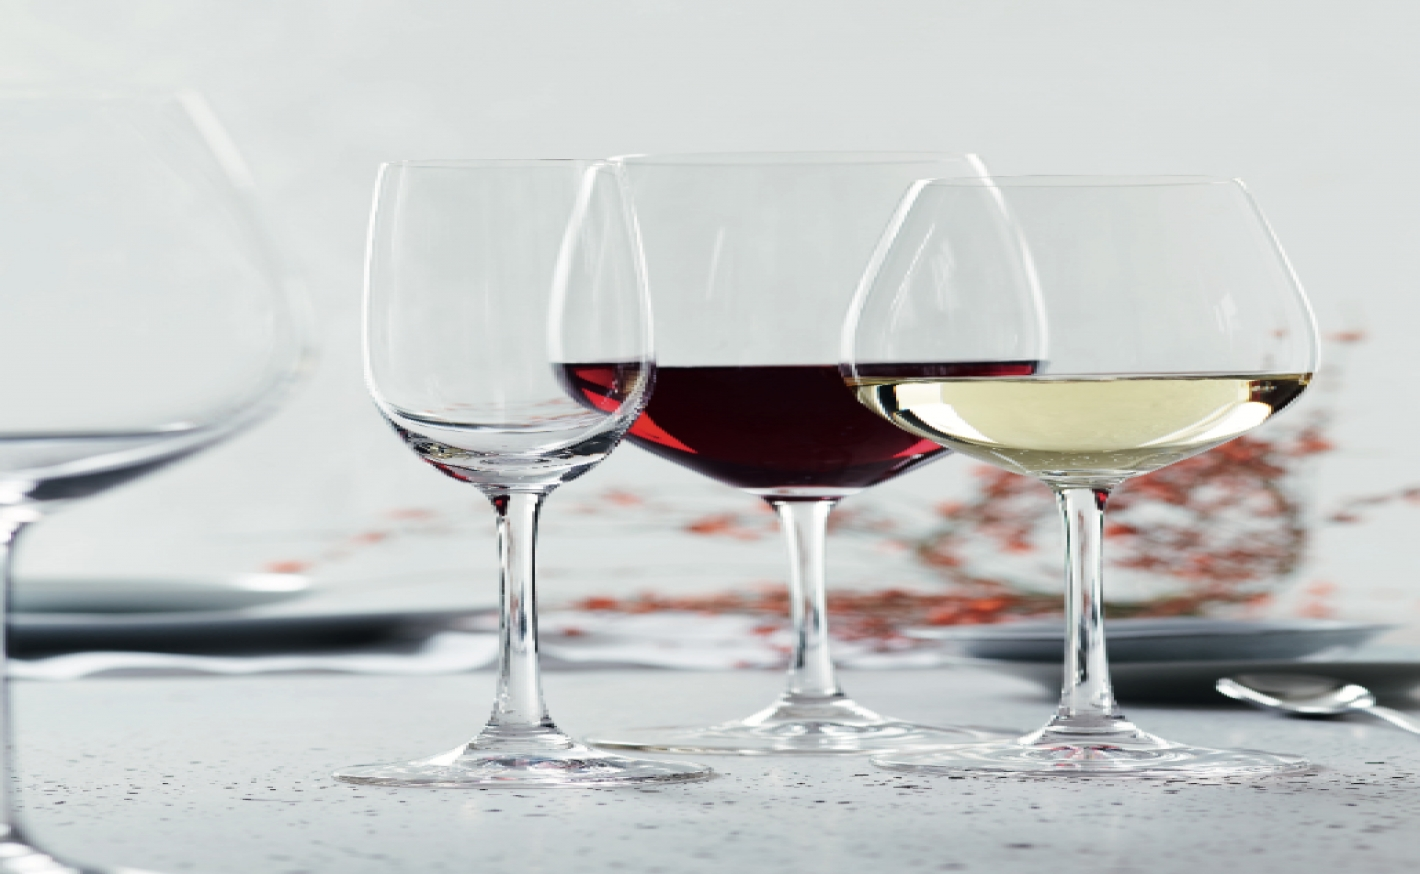 We are now an official Spiegelau glassware stockist